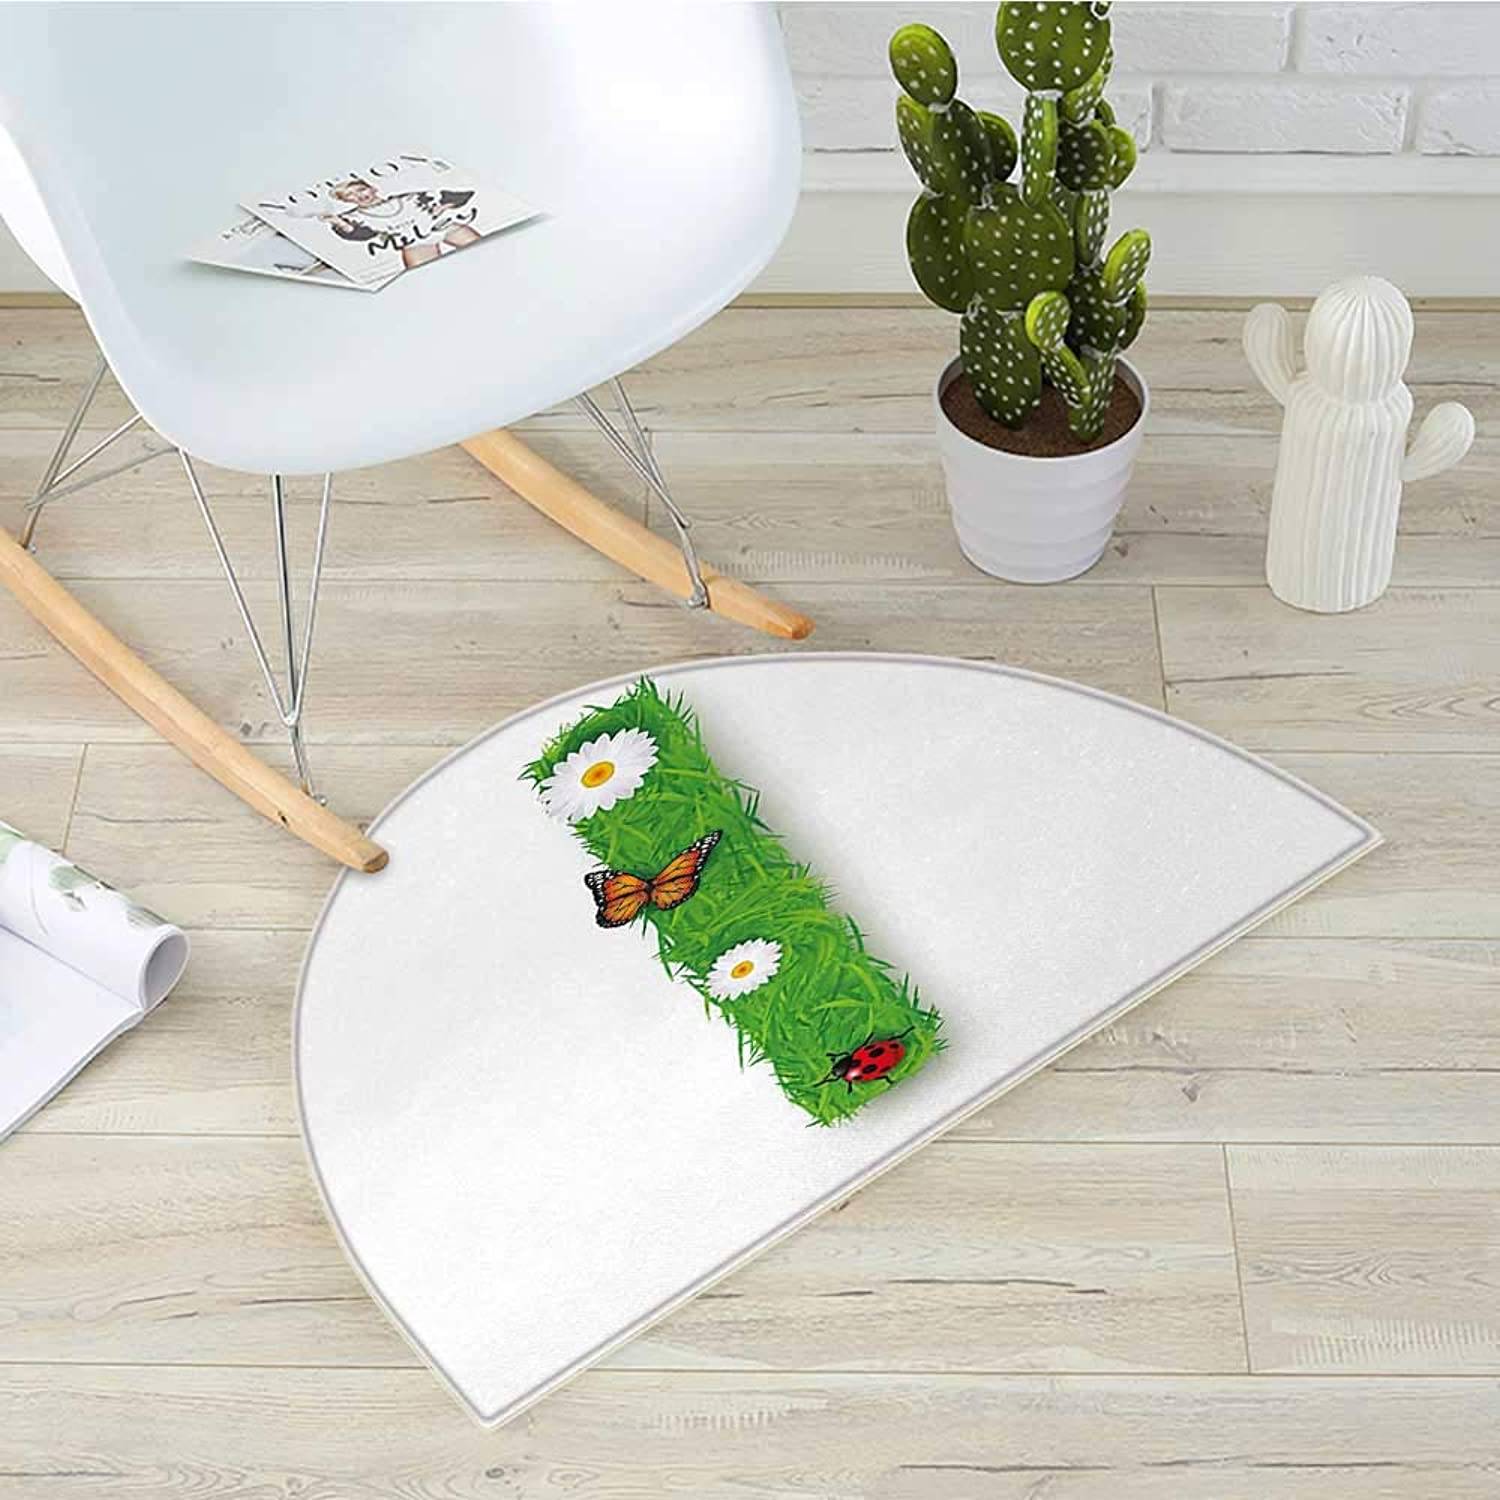 Letter I Semicircular CushionGrass Letters with Floral Butterfly Refreshing Writing Nursery Daisy Print Entry Door Mat H 43.3  xD 64.9  Green Multicolor